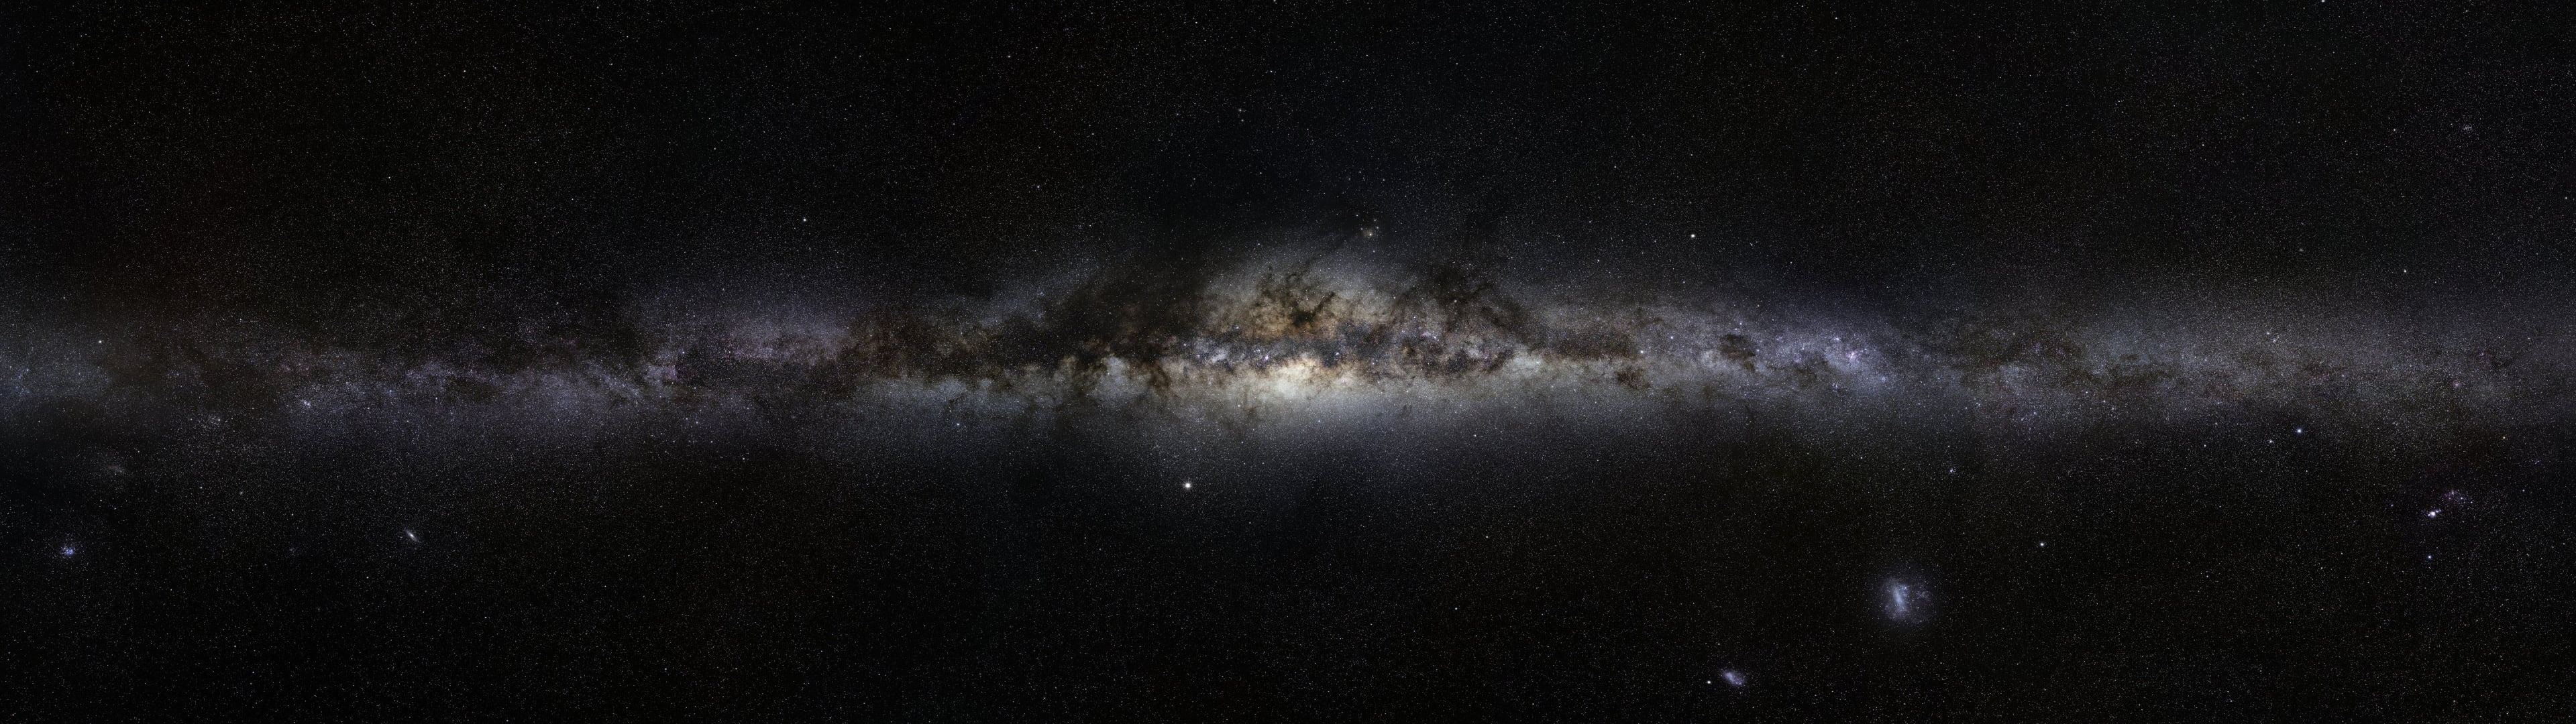 Outer Space Galaxies Milky Way 3840x1080 Space Galaxies Hd Art Galaxies Outer Space 4k Wallpaper Hdwallpaper D Dual Screen Wallpaper Galaxy Hd Milky Way